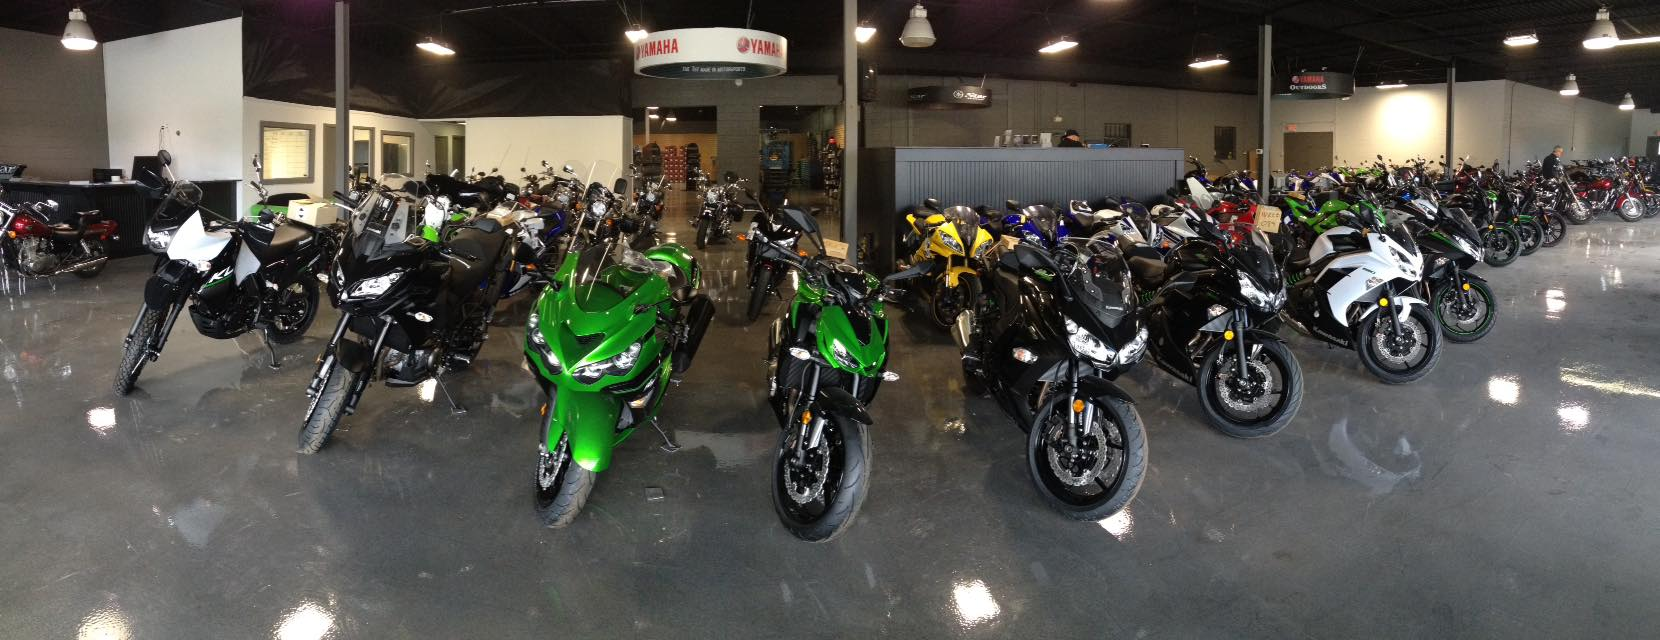 Free Ride Powersports Reviews Automotive At 4405 Jackson Rd Ann